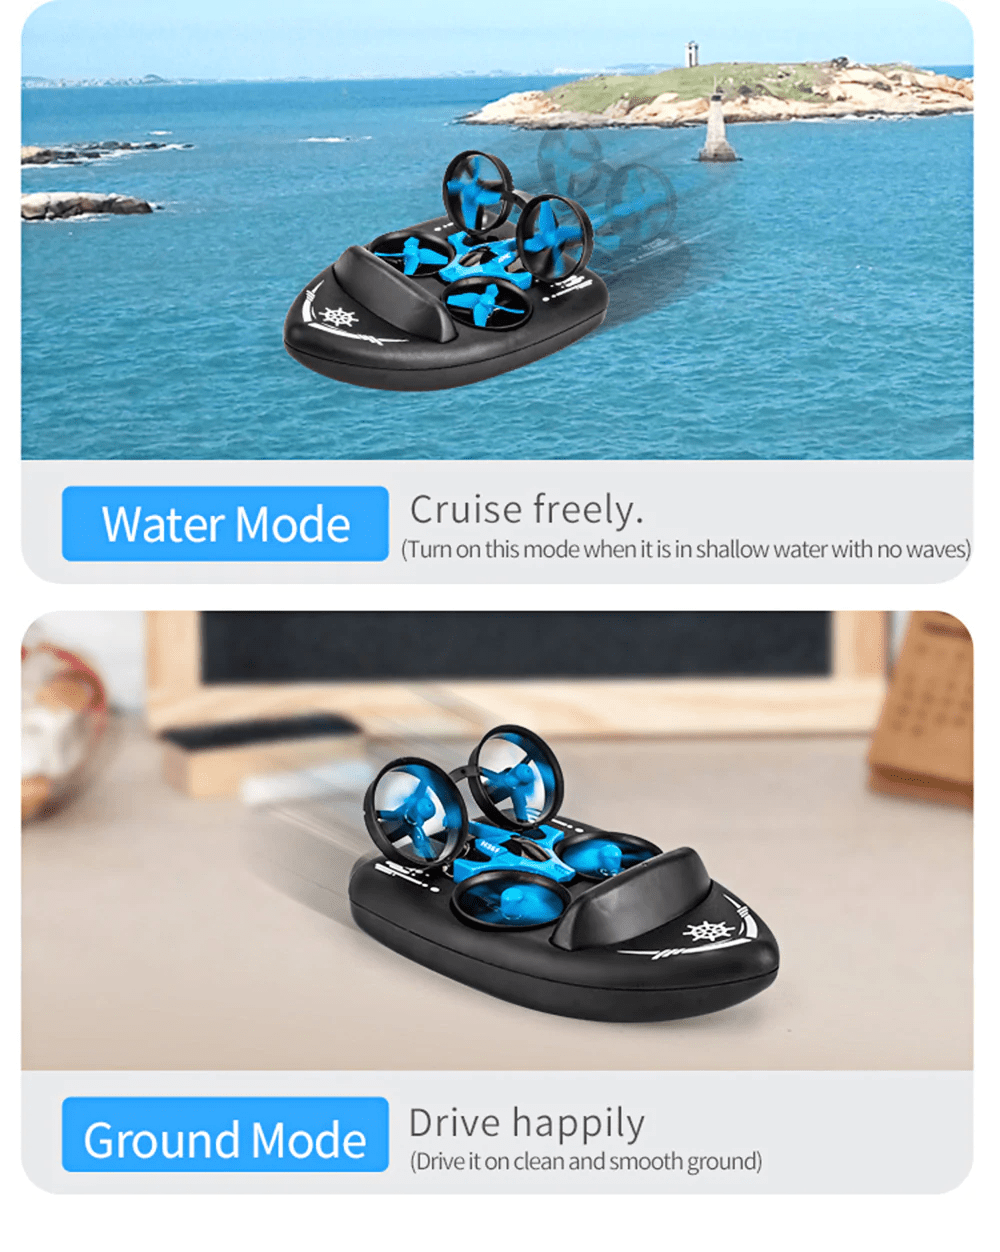 20190613162221 17311 - JJRC H36F 3 in 1 Mini RC Quadcopter Hovercraft Boat